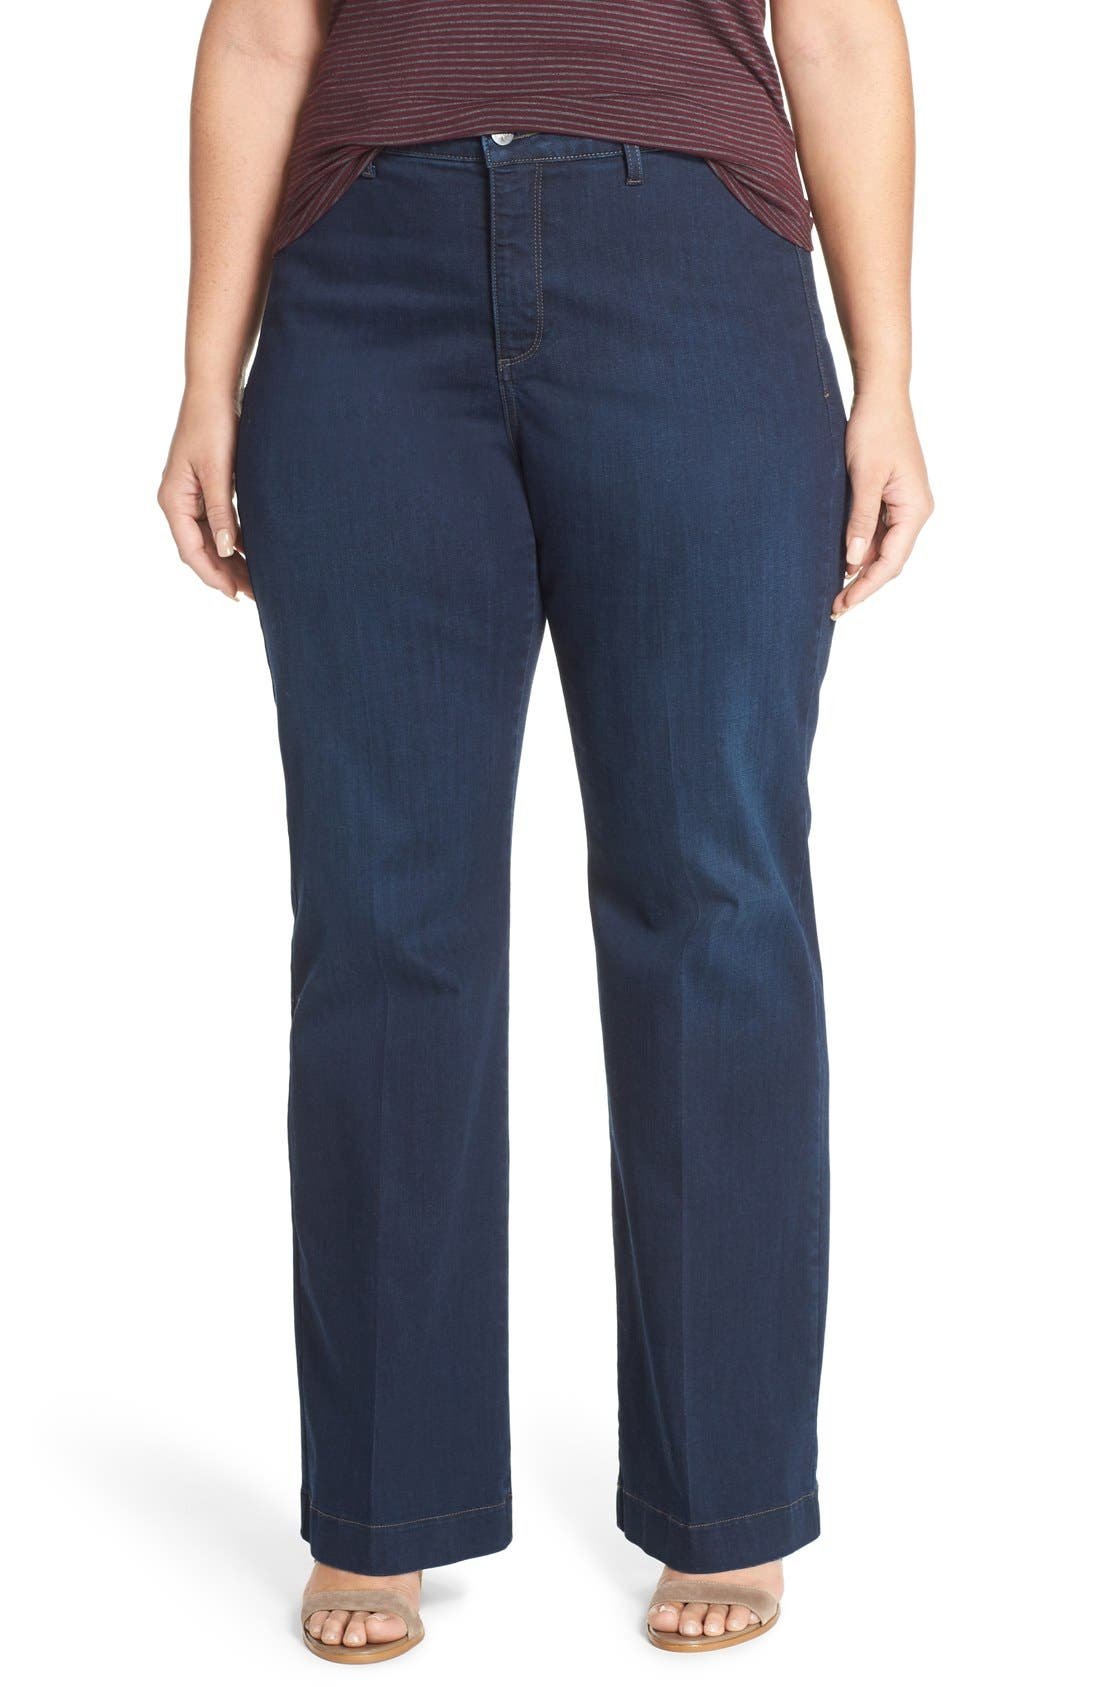 Shop our Collection of Women's Wide Leg Pants at litastmaterlo.gq for the Latest Designer Brands & Styles. FREE SHIPPING AVAILABLE! Macy's Presents: The Edit- A curated mix of fashion and inspiration Check It Out. Style & Co Stretch Wide-Leg Pants, Created for Macy's.